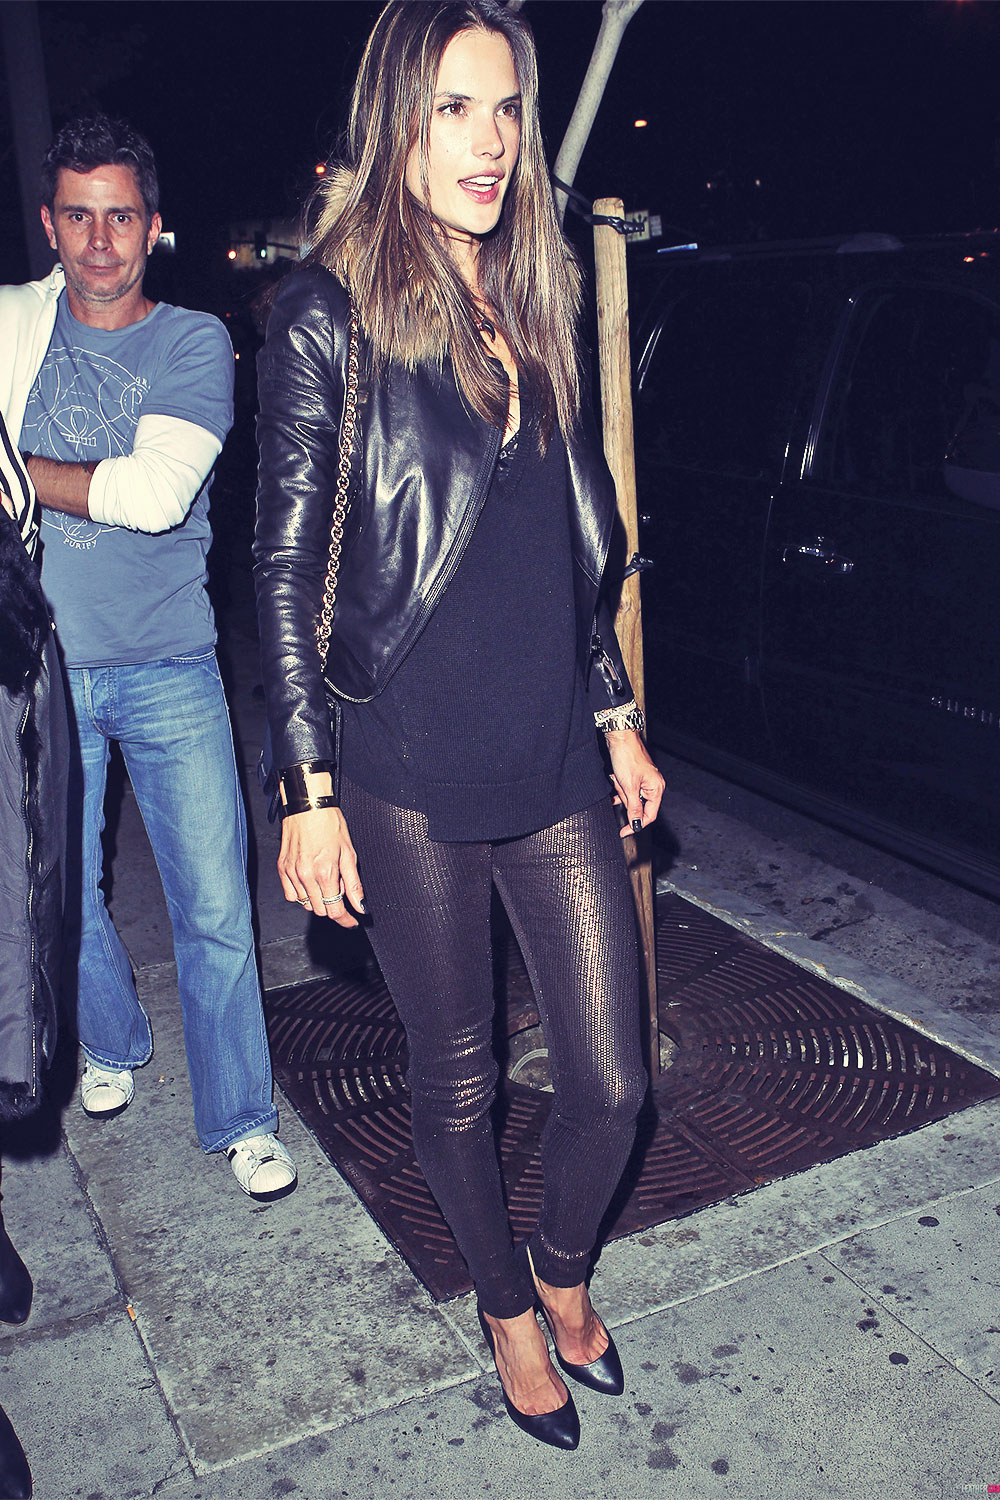 Alessandra Ambrosio at club Bootsy Bellows